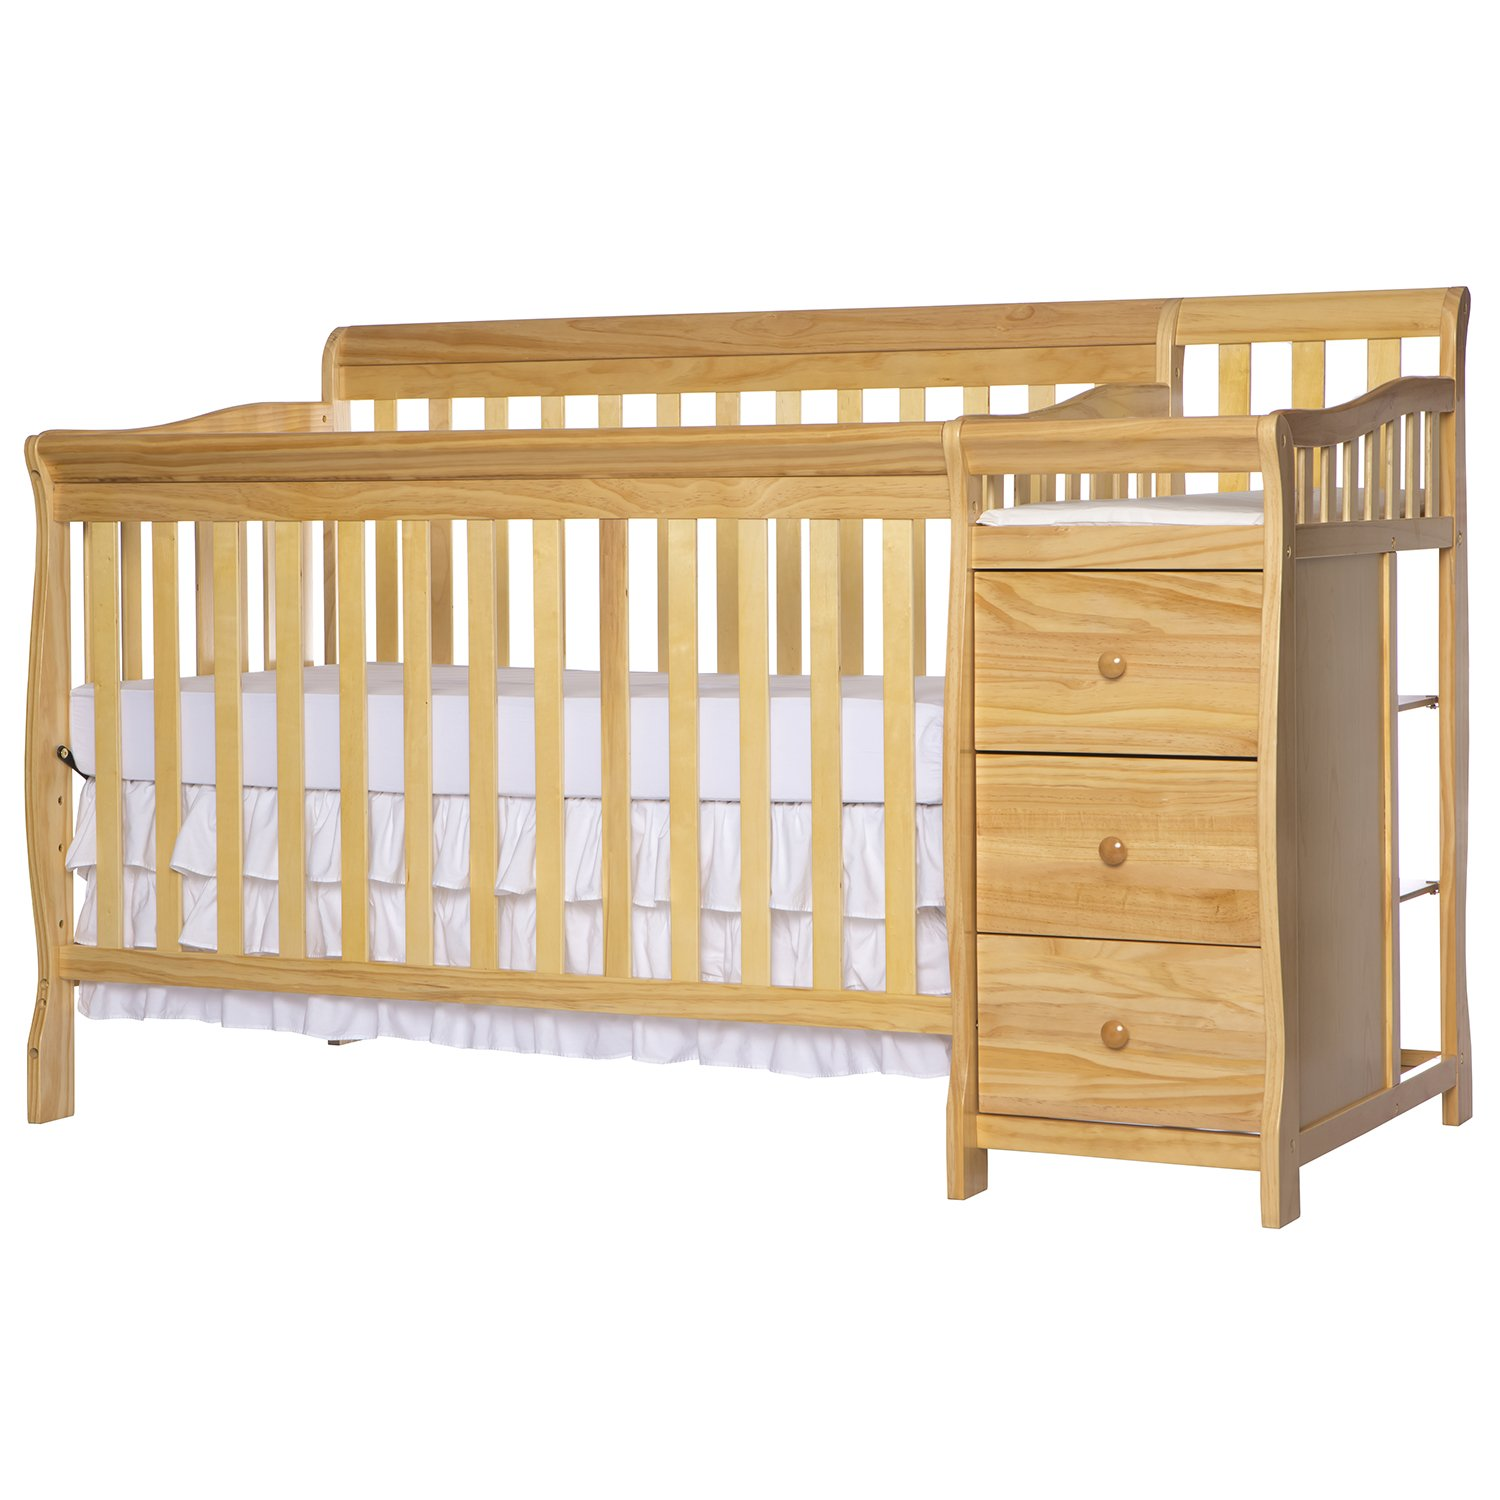 Dream On Me 5 in 1 Brody Convertible Crib with Changer, Natural by Dream On Me (Image #3)